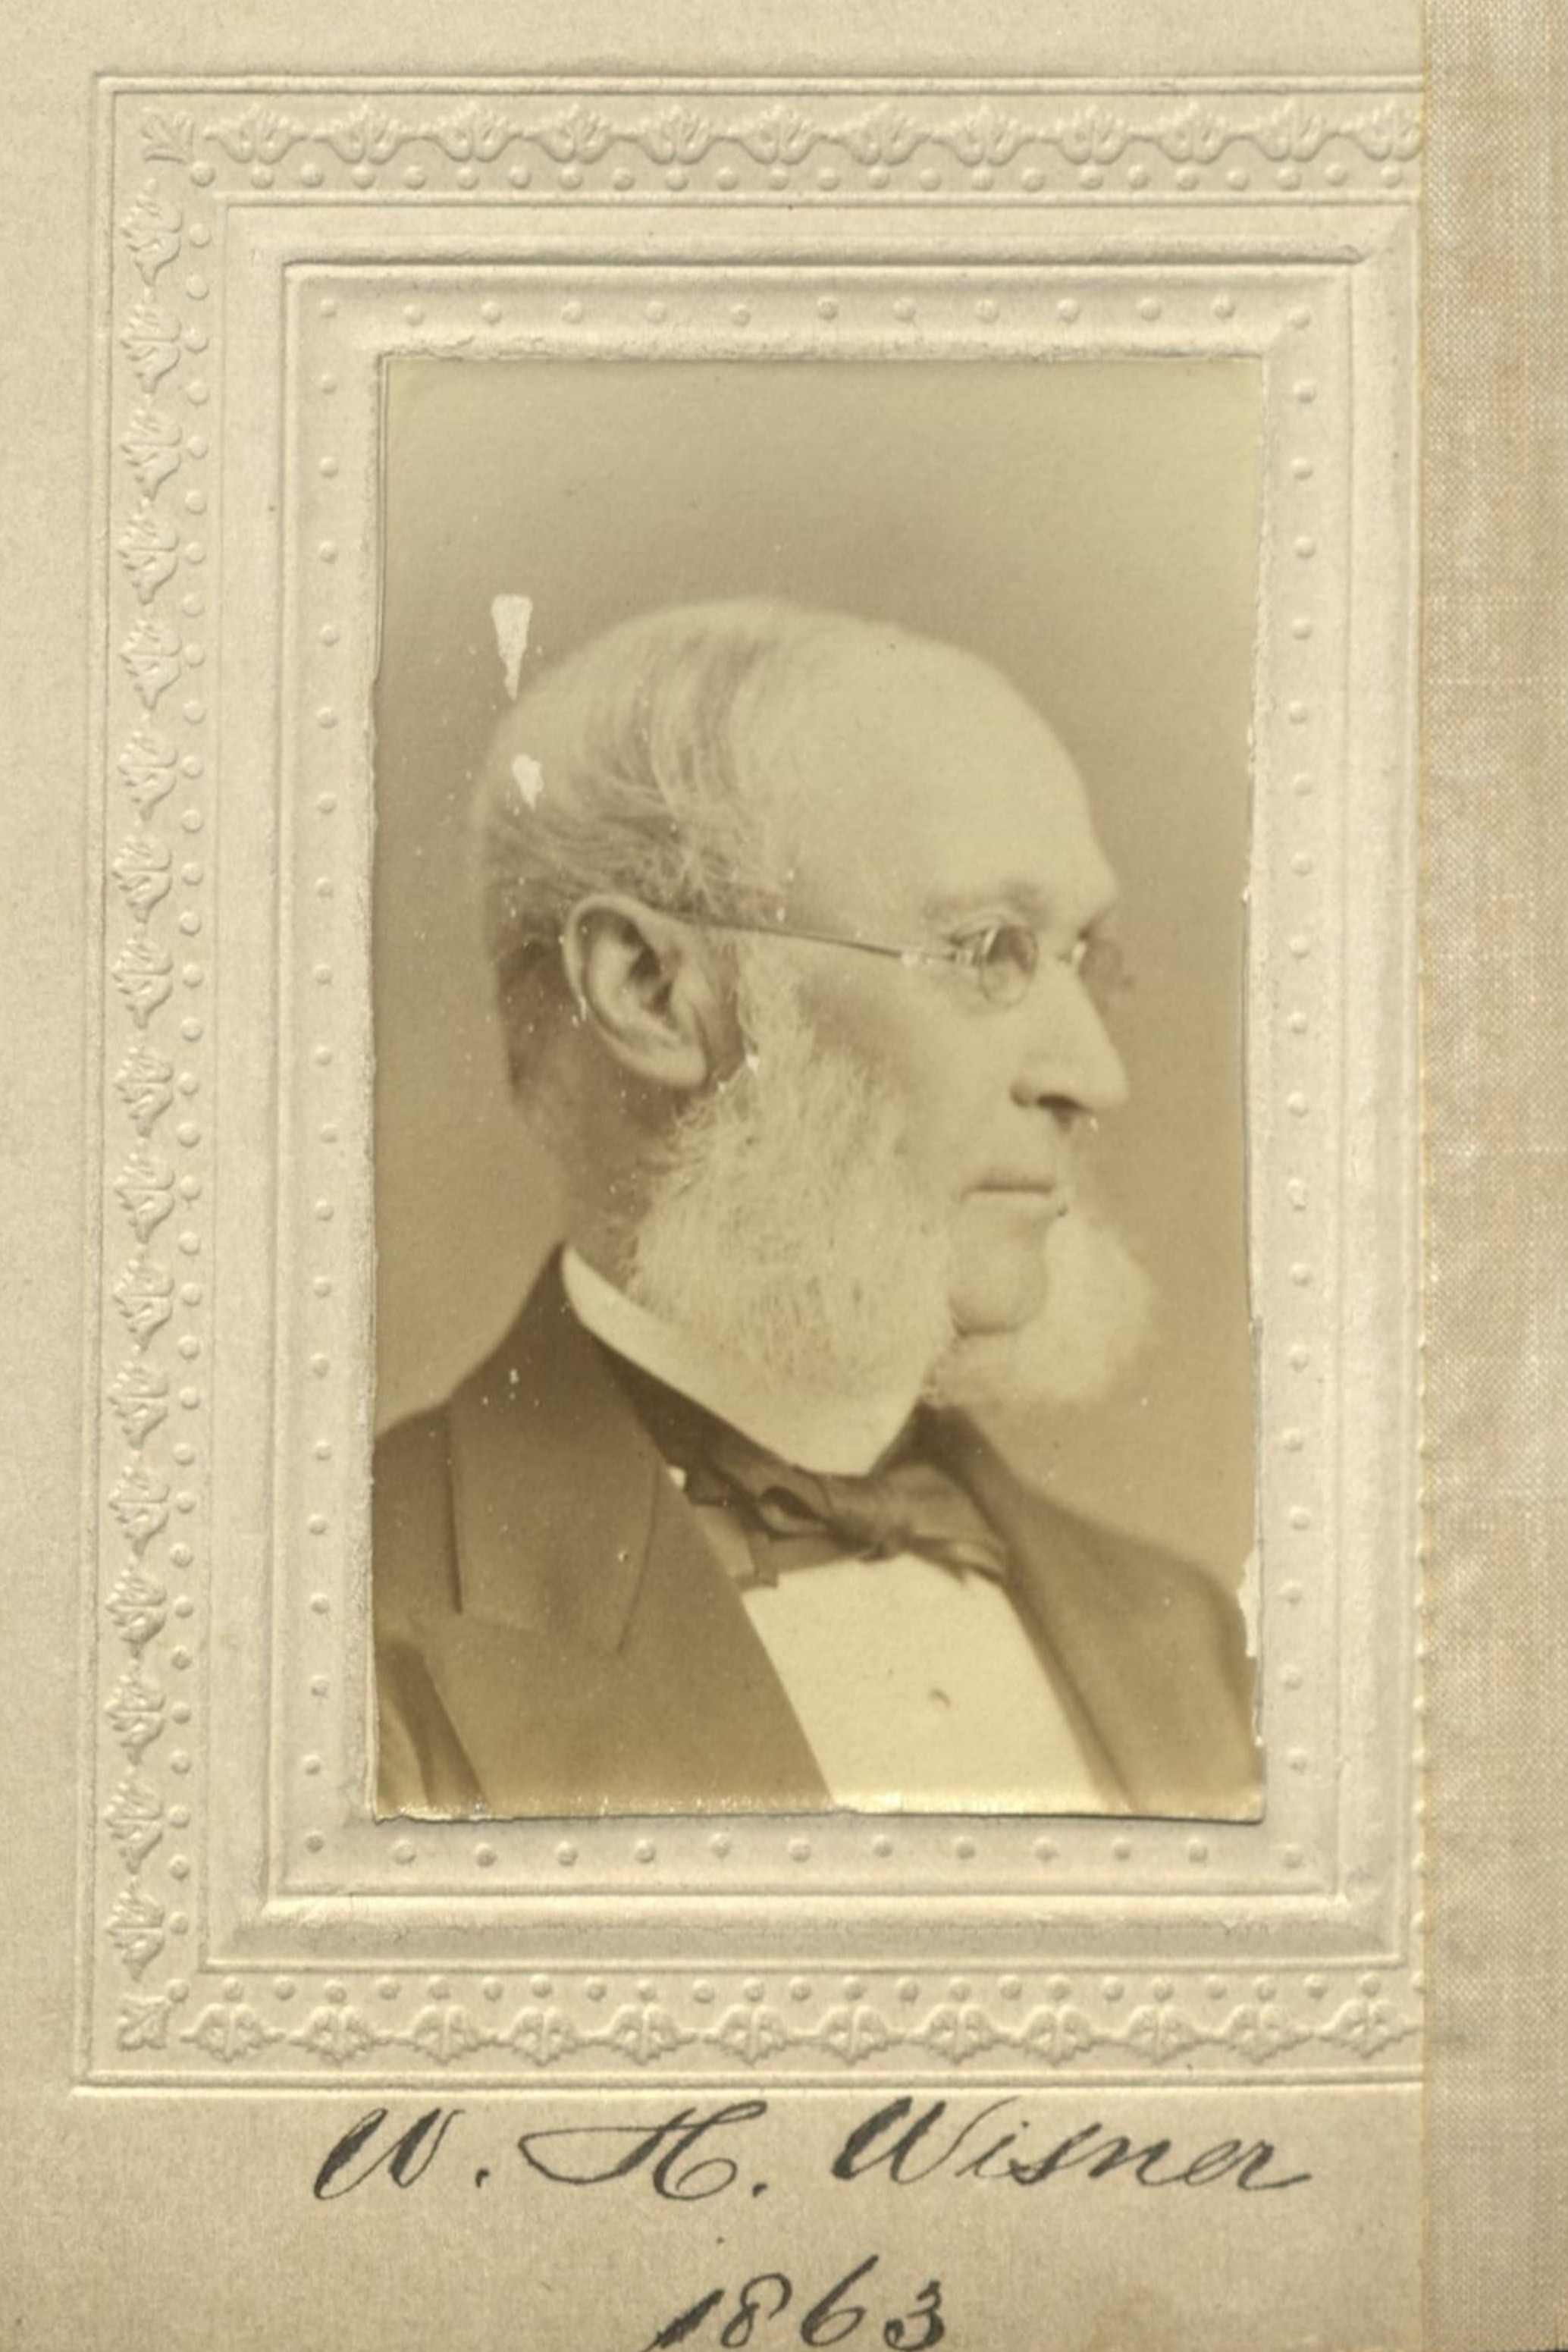 Member portrait of William H. Wisner